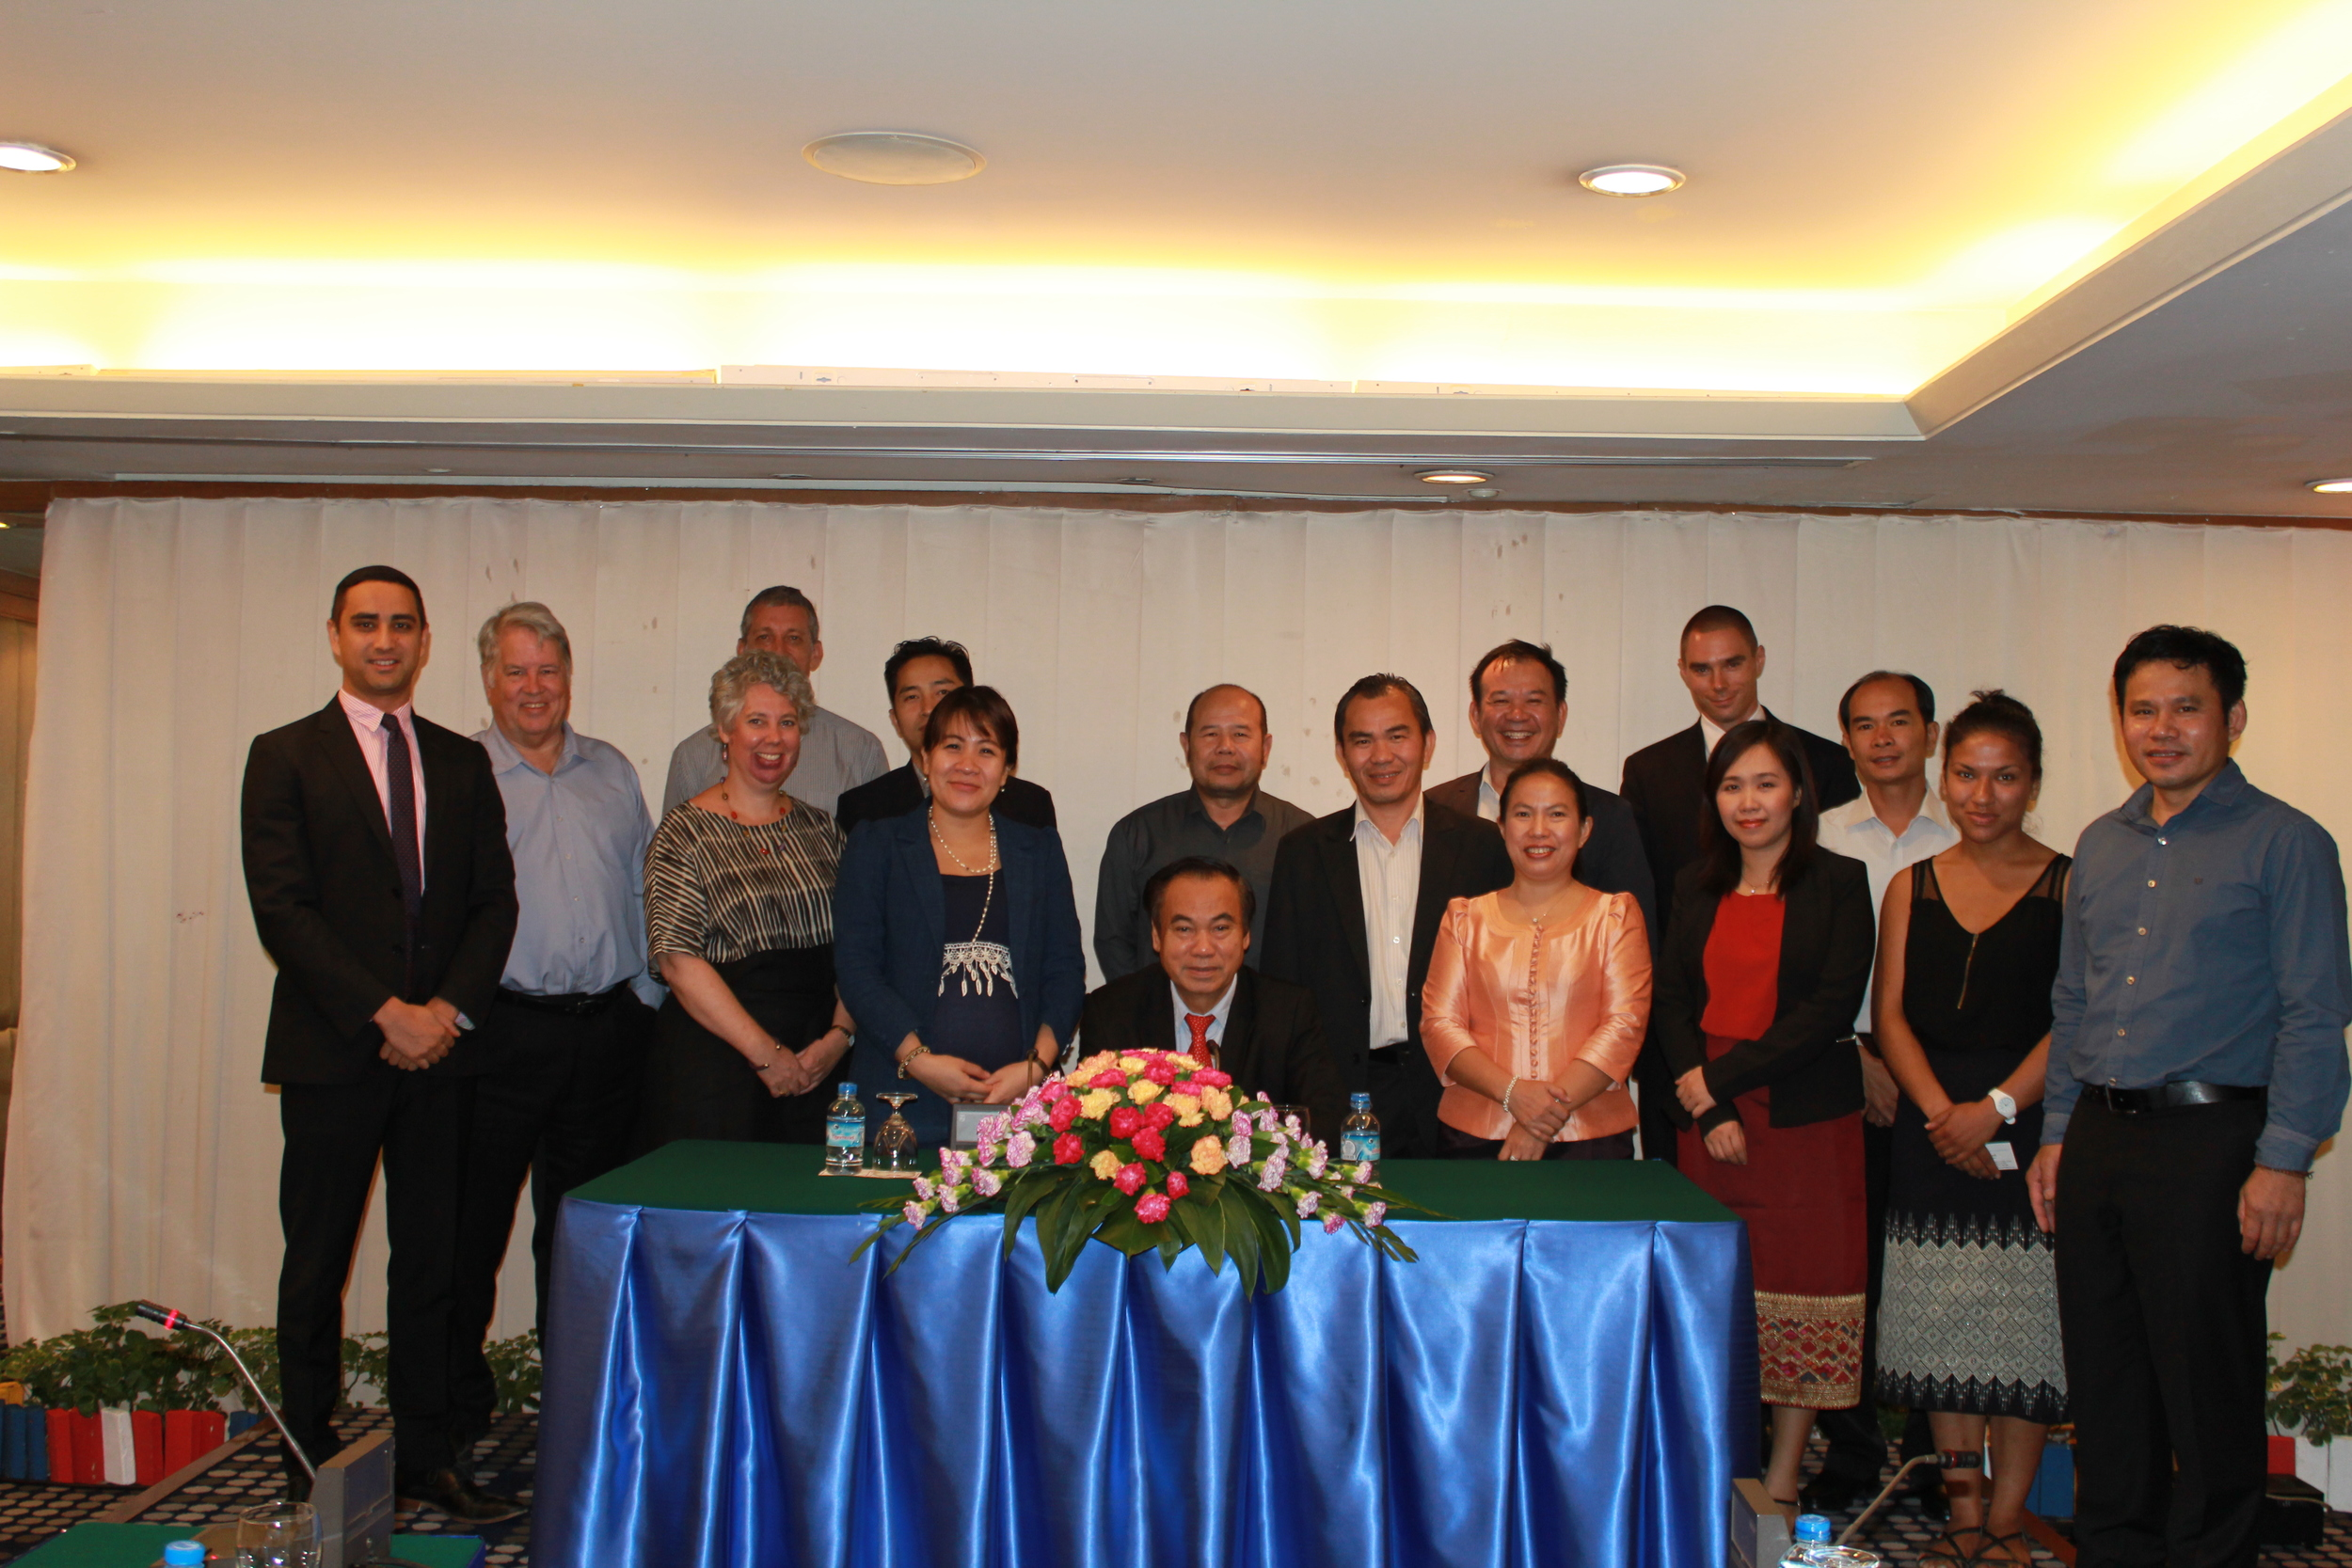 H.E. Professor Ket Kiettisak, Vice-Minister of Justice (centre), joined by colleagues working to finalise the draft bill on countering human trafficking in the Lao PDR